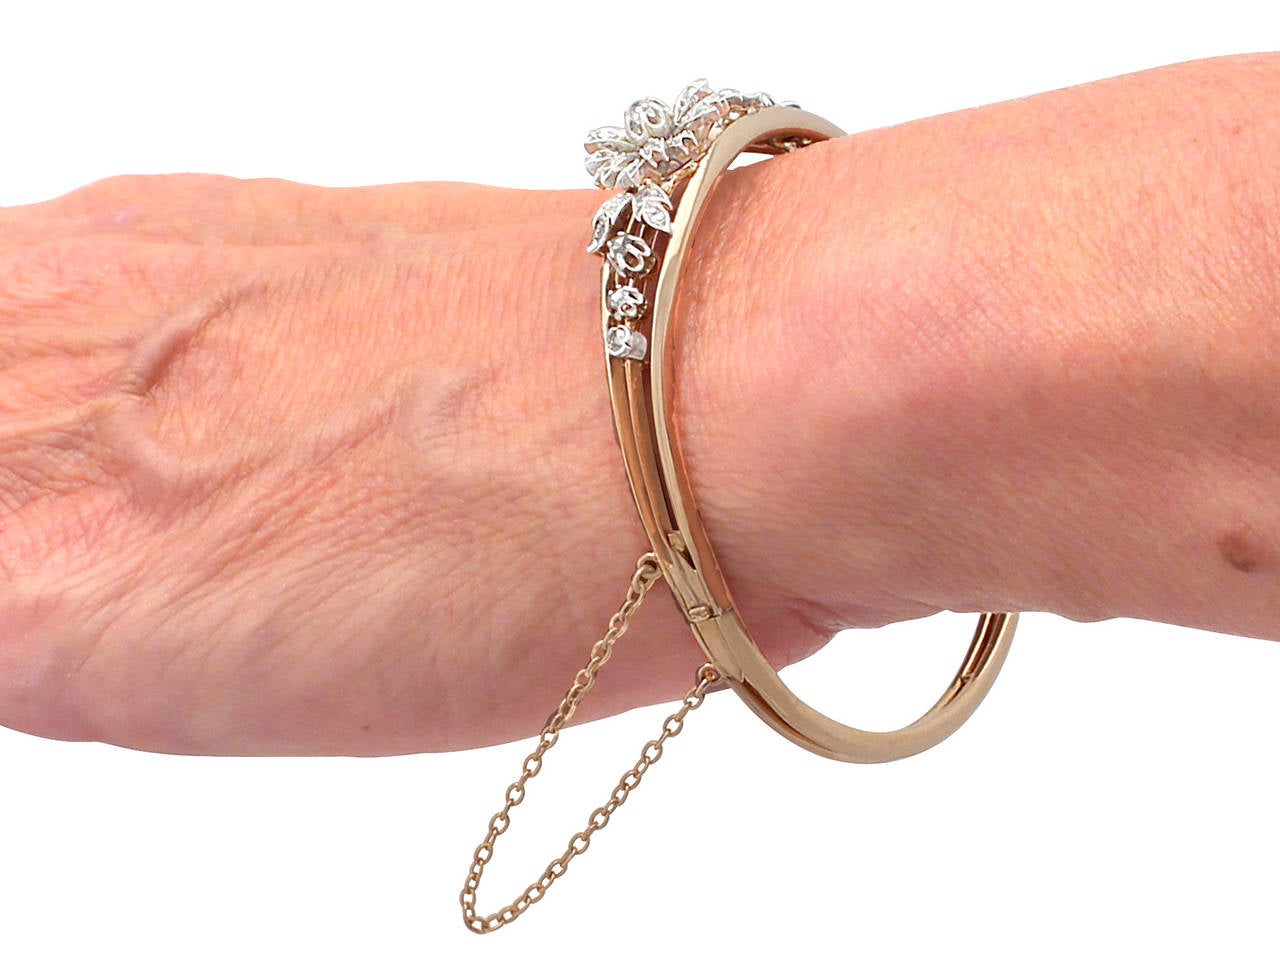 0.62Ct Diamond & 18k Rose Gold, Silver Set Bangle - Antique French Circa 1900 8